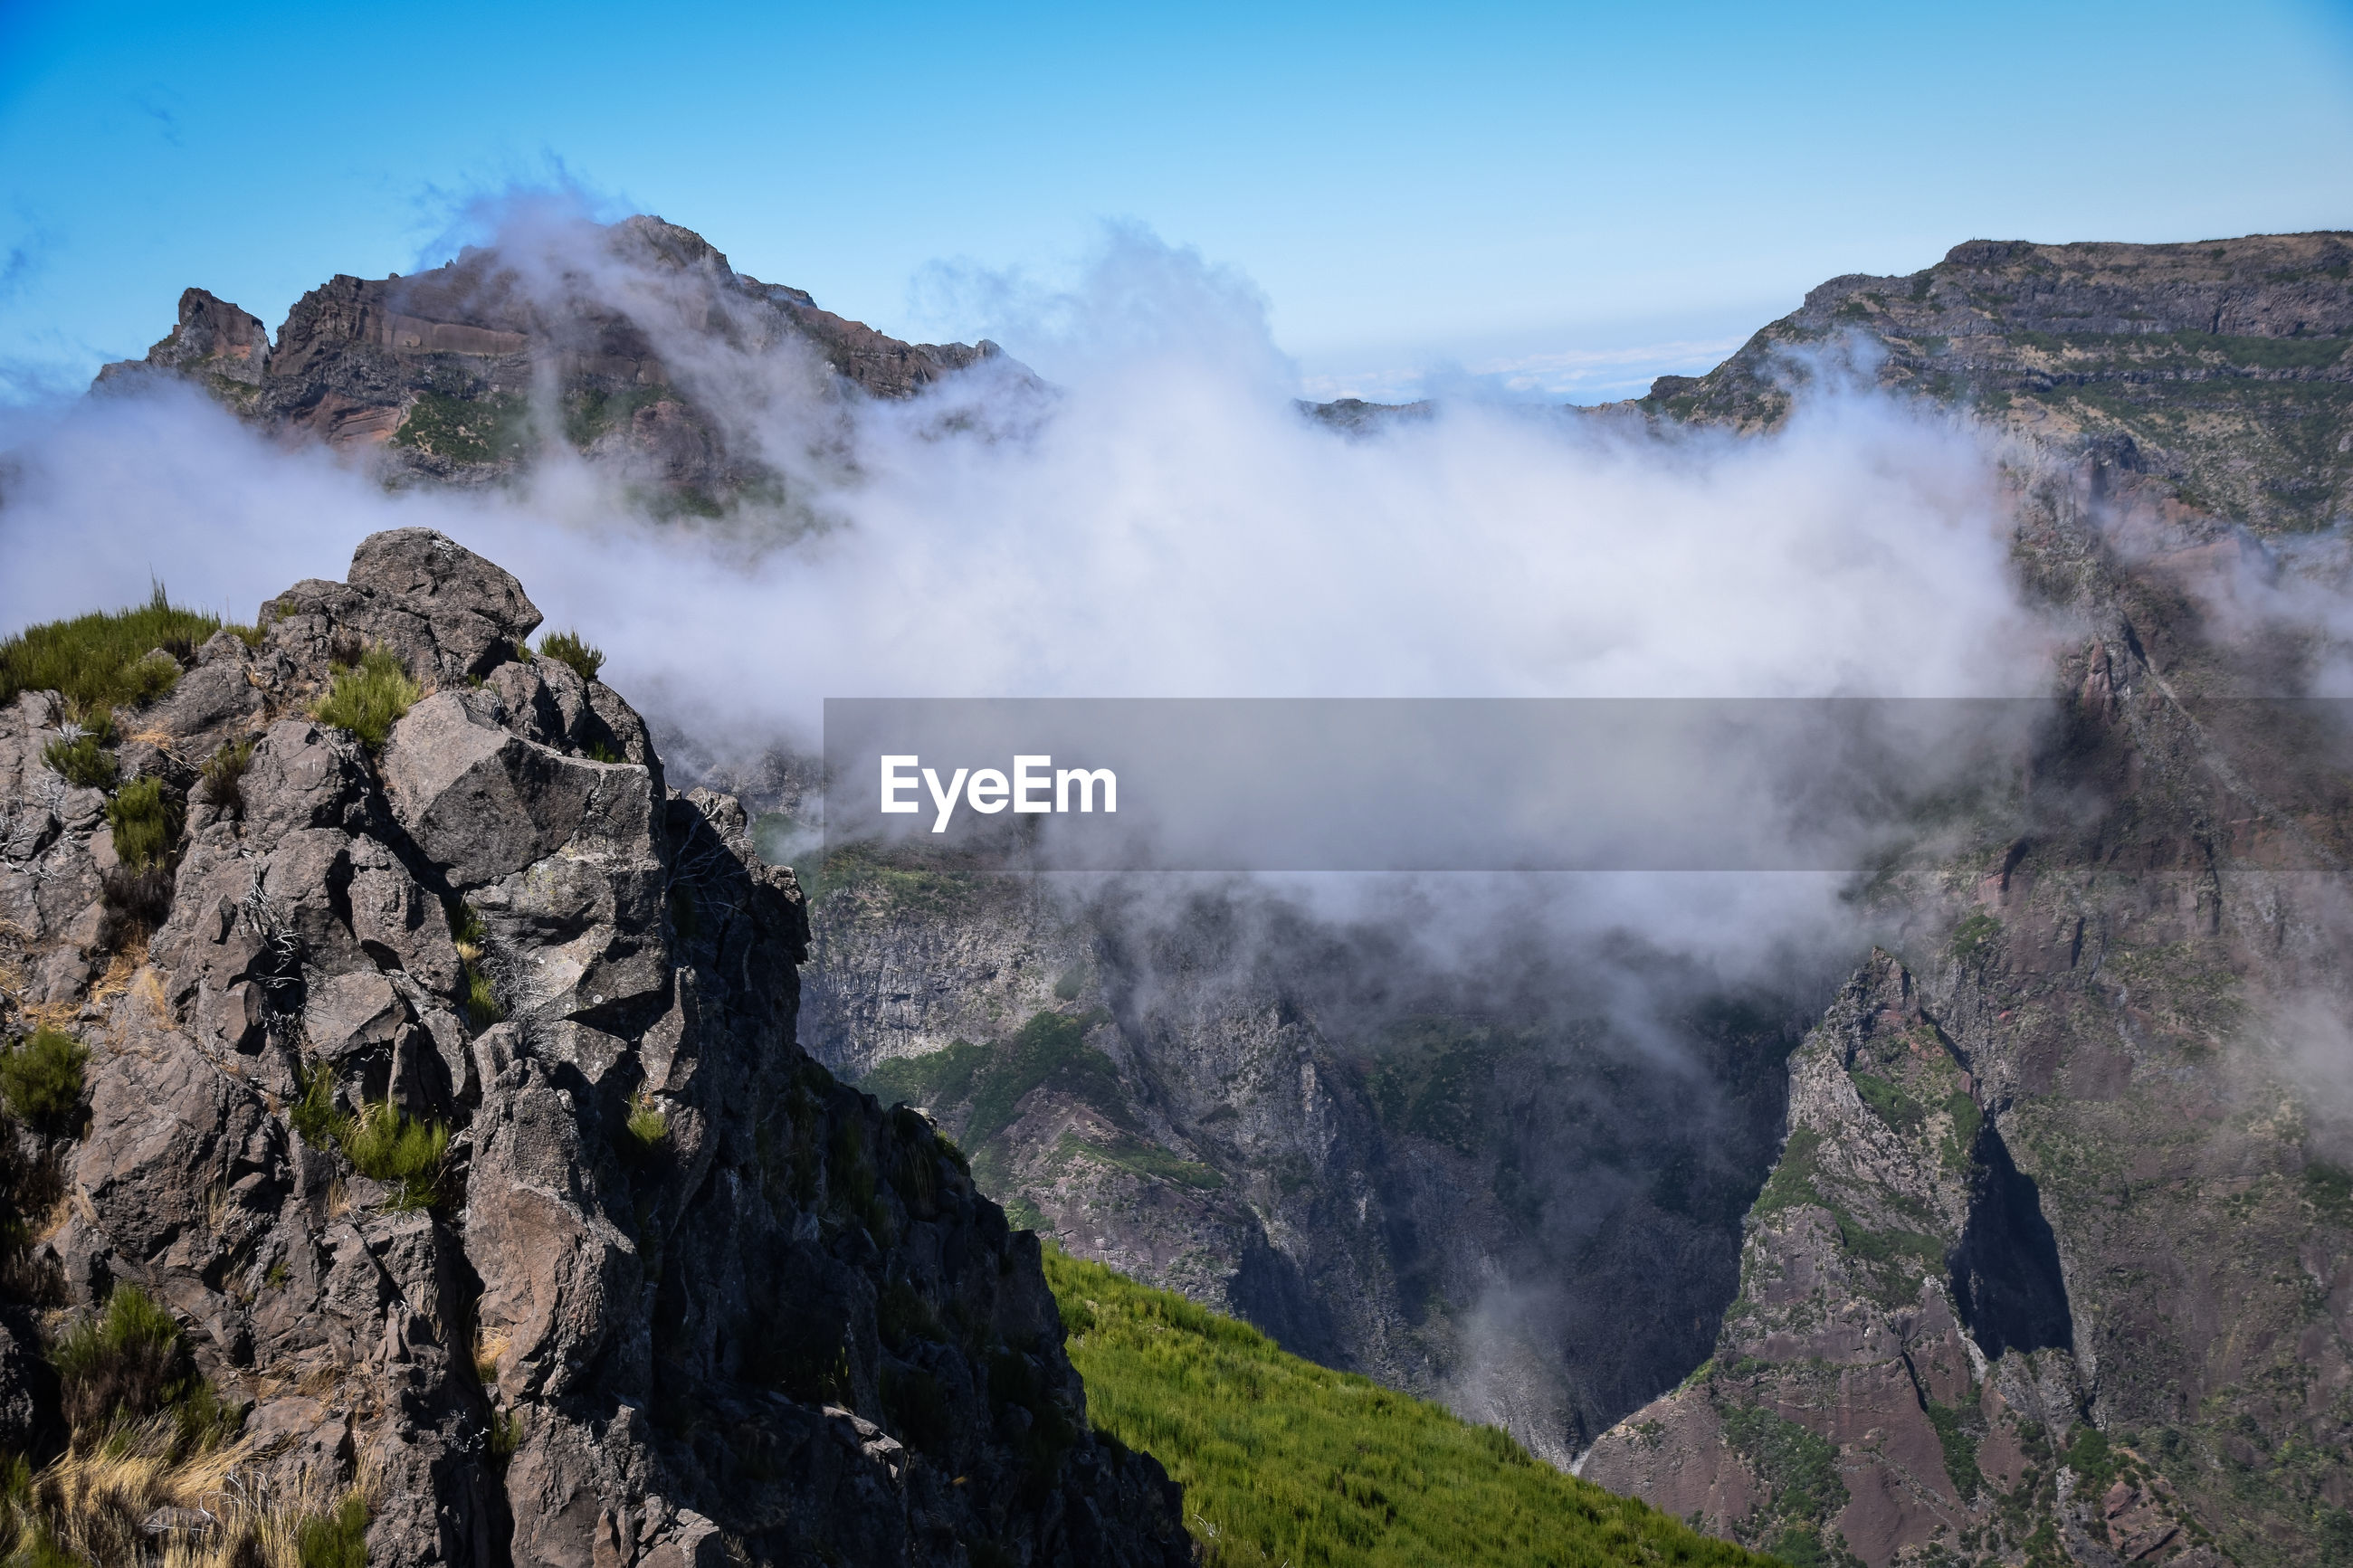 Scenic view of clouds by rocky mountains at pico do arieiro